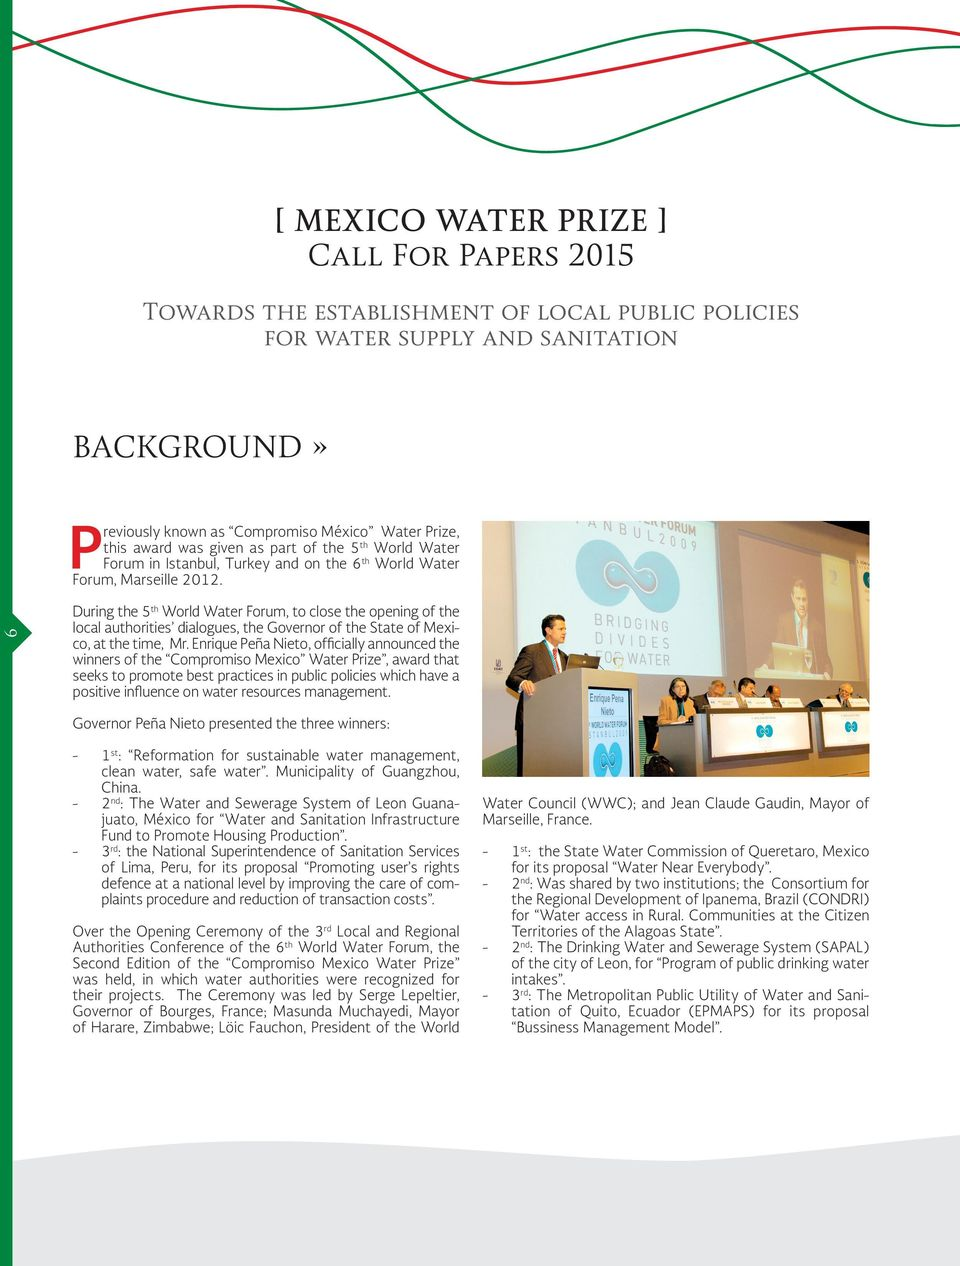 Enrique Peña Nieto, officially announced the winners of the Compromiso Mexico Water Prize, award that seeks to promote best practices in public policies which have a positive influence on water